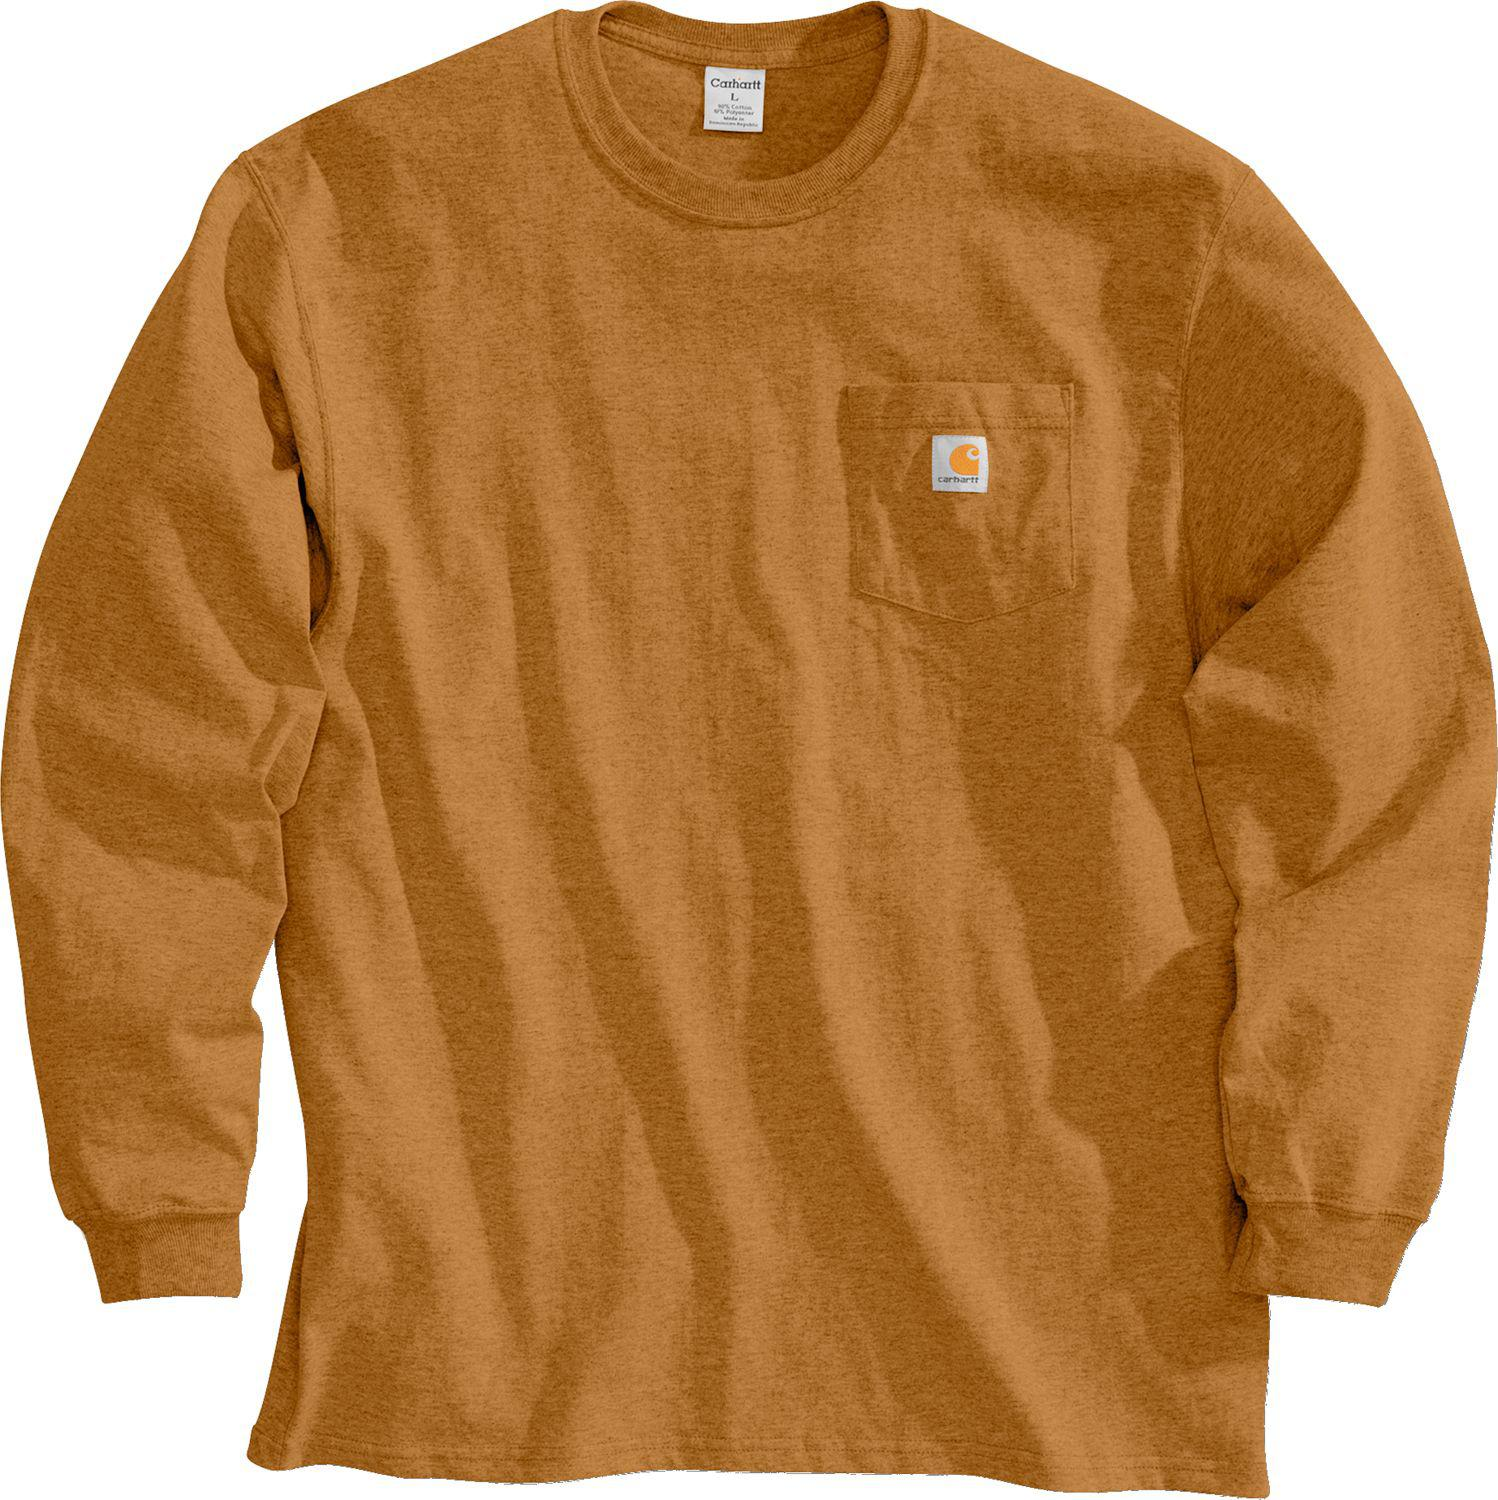 24f9f135a Lyst - Carhartt Workwear Long Sleeve Shirt in Brown for Men